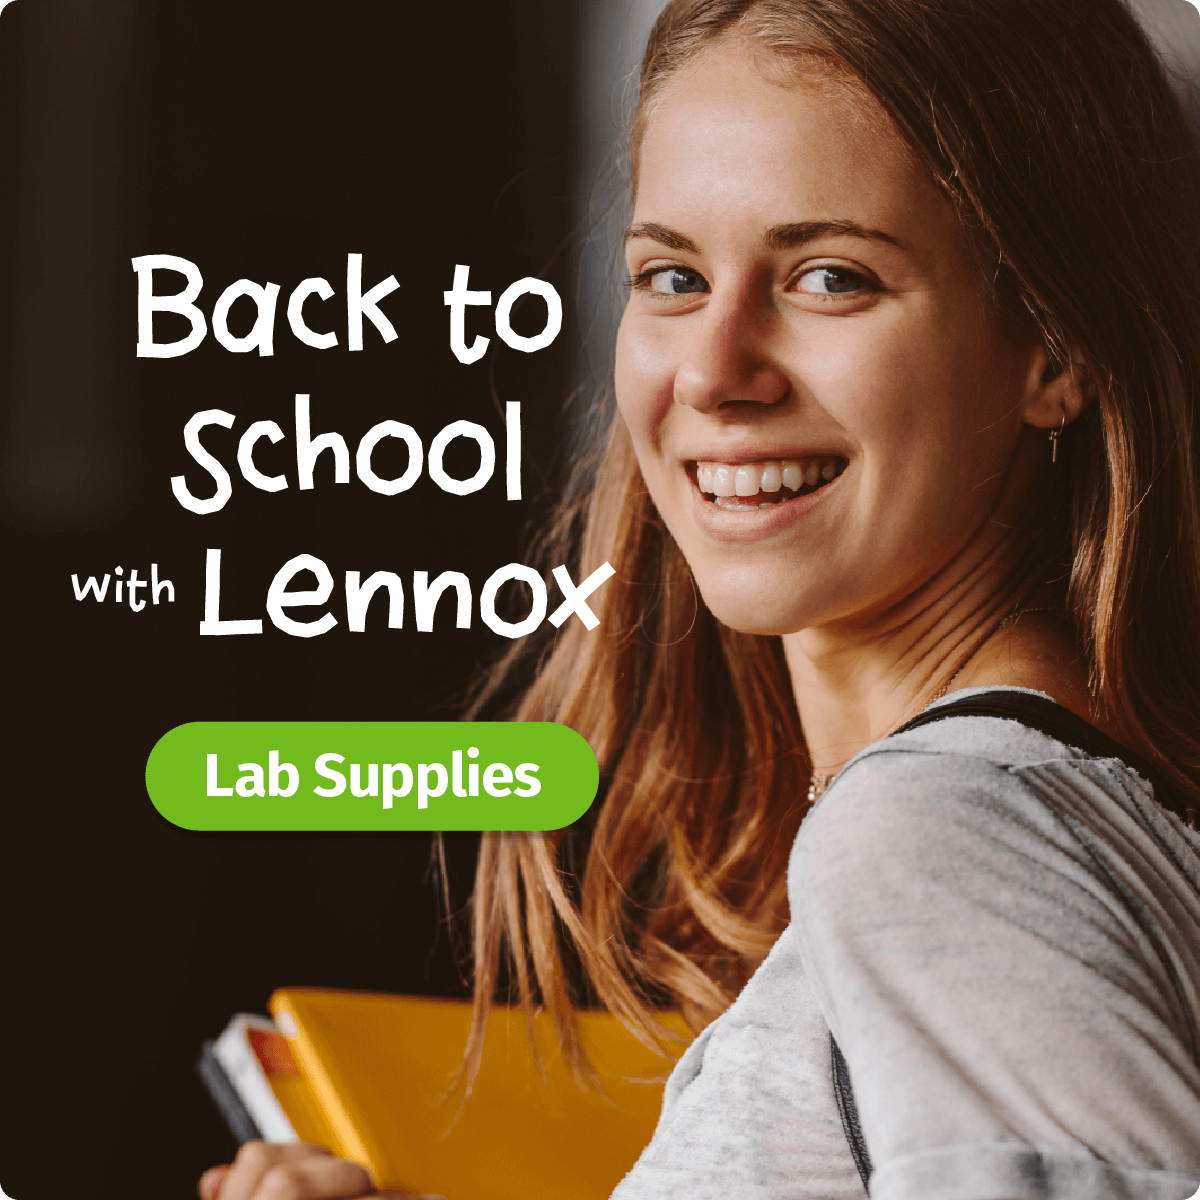 Back to School Safely with Lennox